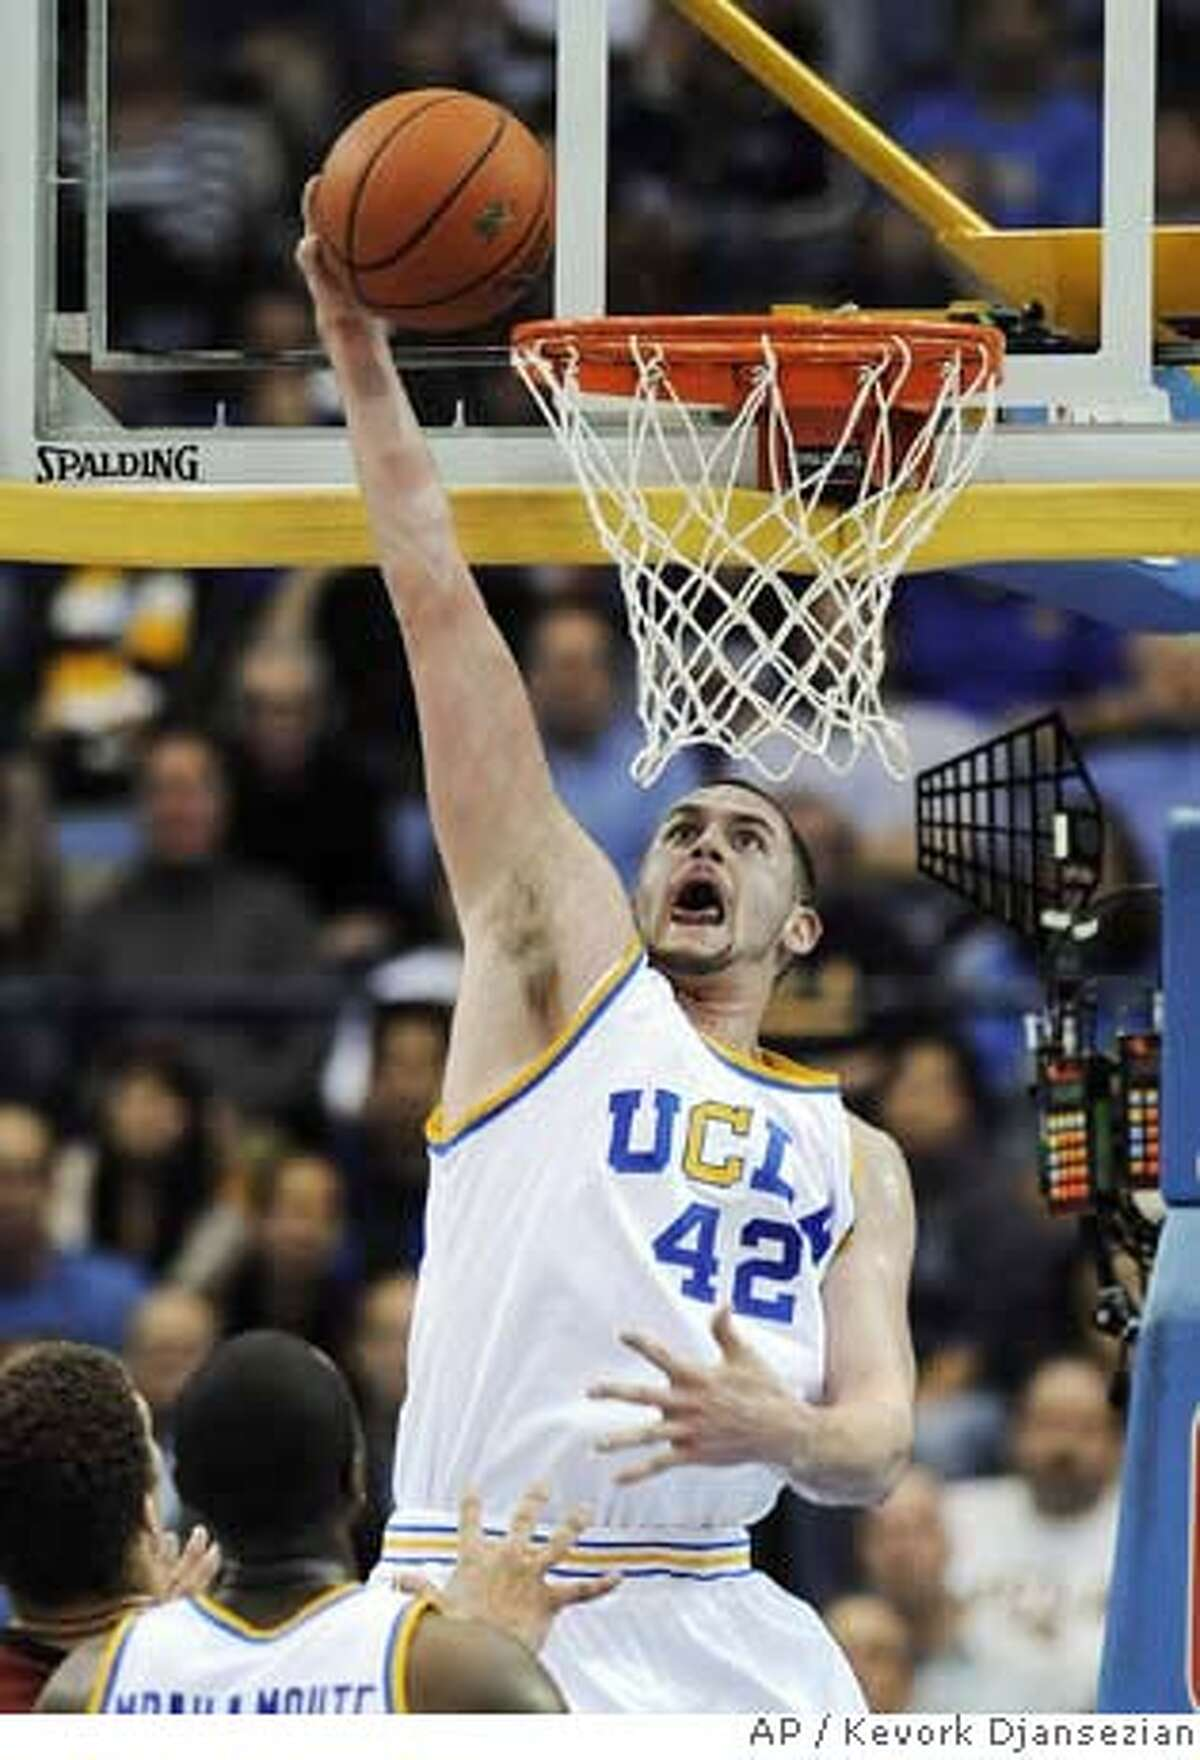 ###Live Caption:UCLA's Kevin Love dunks the ball against Stanford during the first half of the college basketball game in Los Angeles on Thursday, March 6, 2008. (AP Photo/Kevork Djansezian)###Caption History:UCLA's Kevin Love dunks the ball against Stanford during the first half of the college basketball game in Los Angeles on Thursday, March 6, 2008. (AP Photo/Kevork Djansezian)###Notes:Kevin Love###Special Instructions:EFE OUT